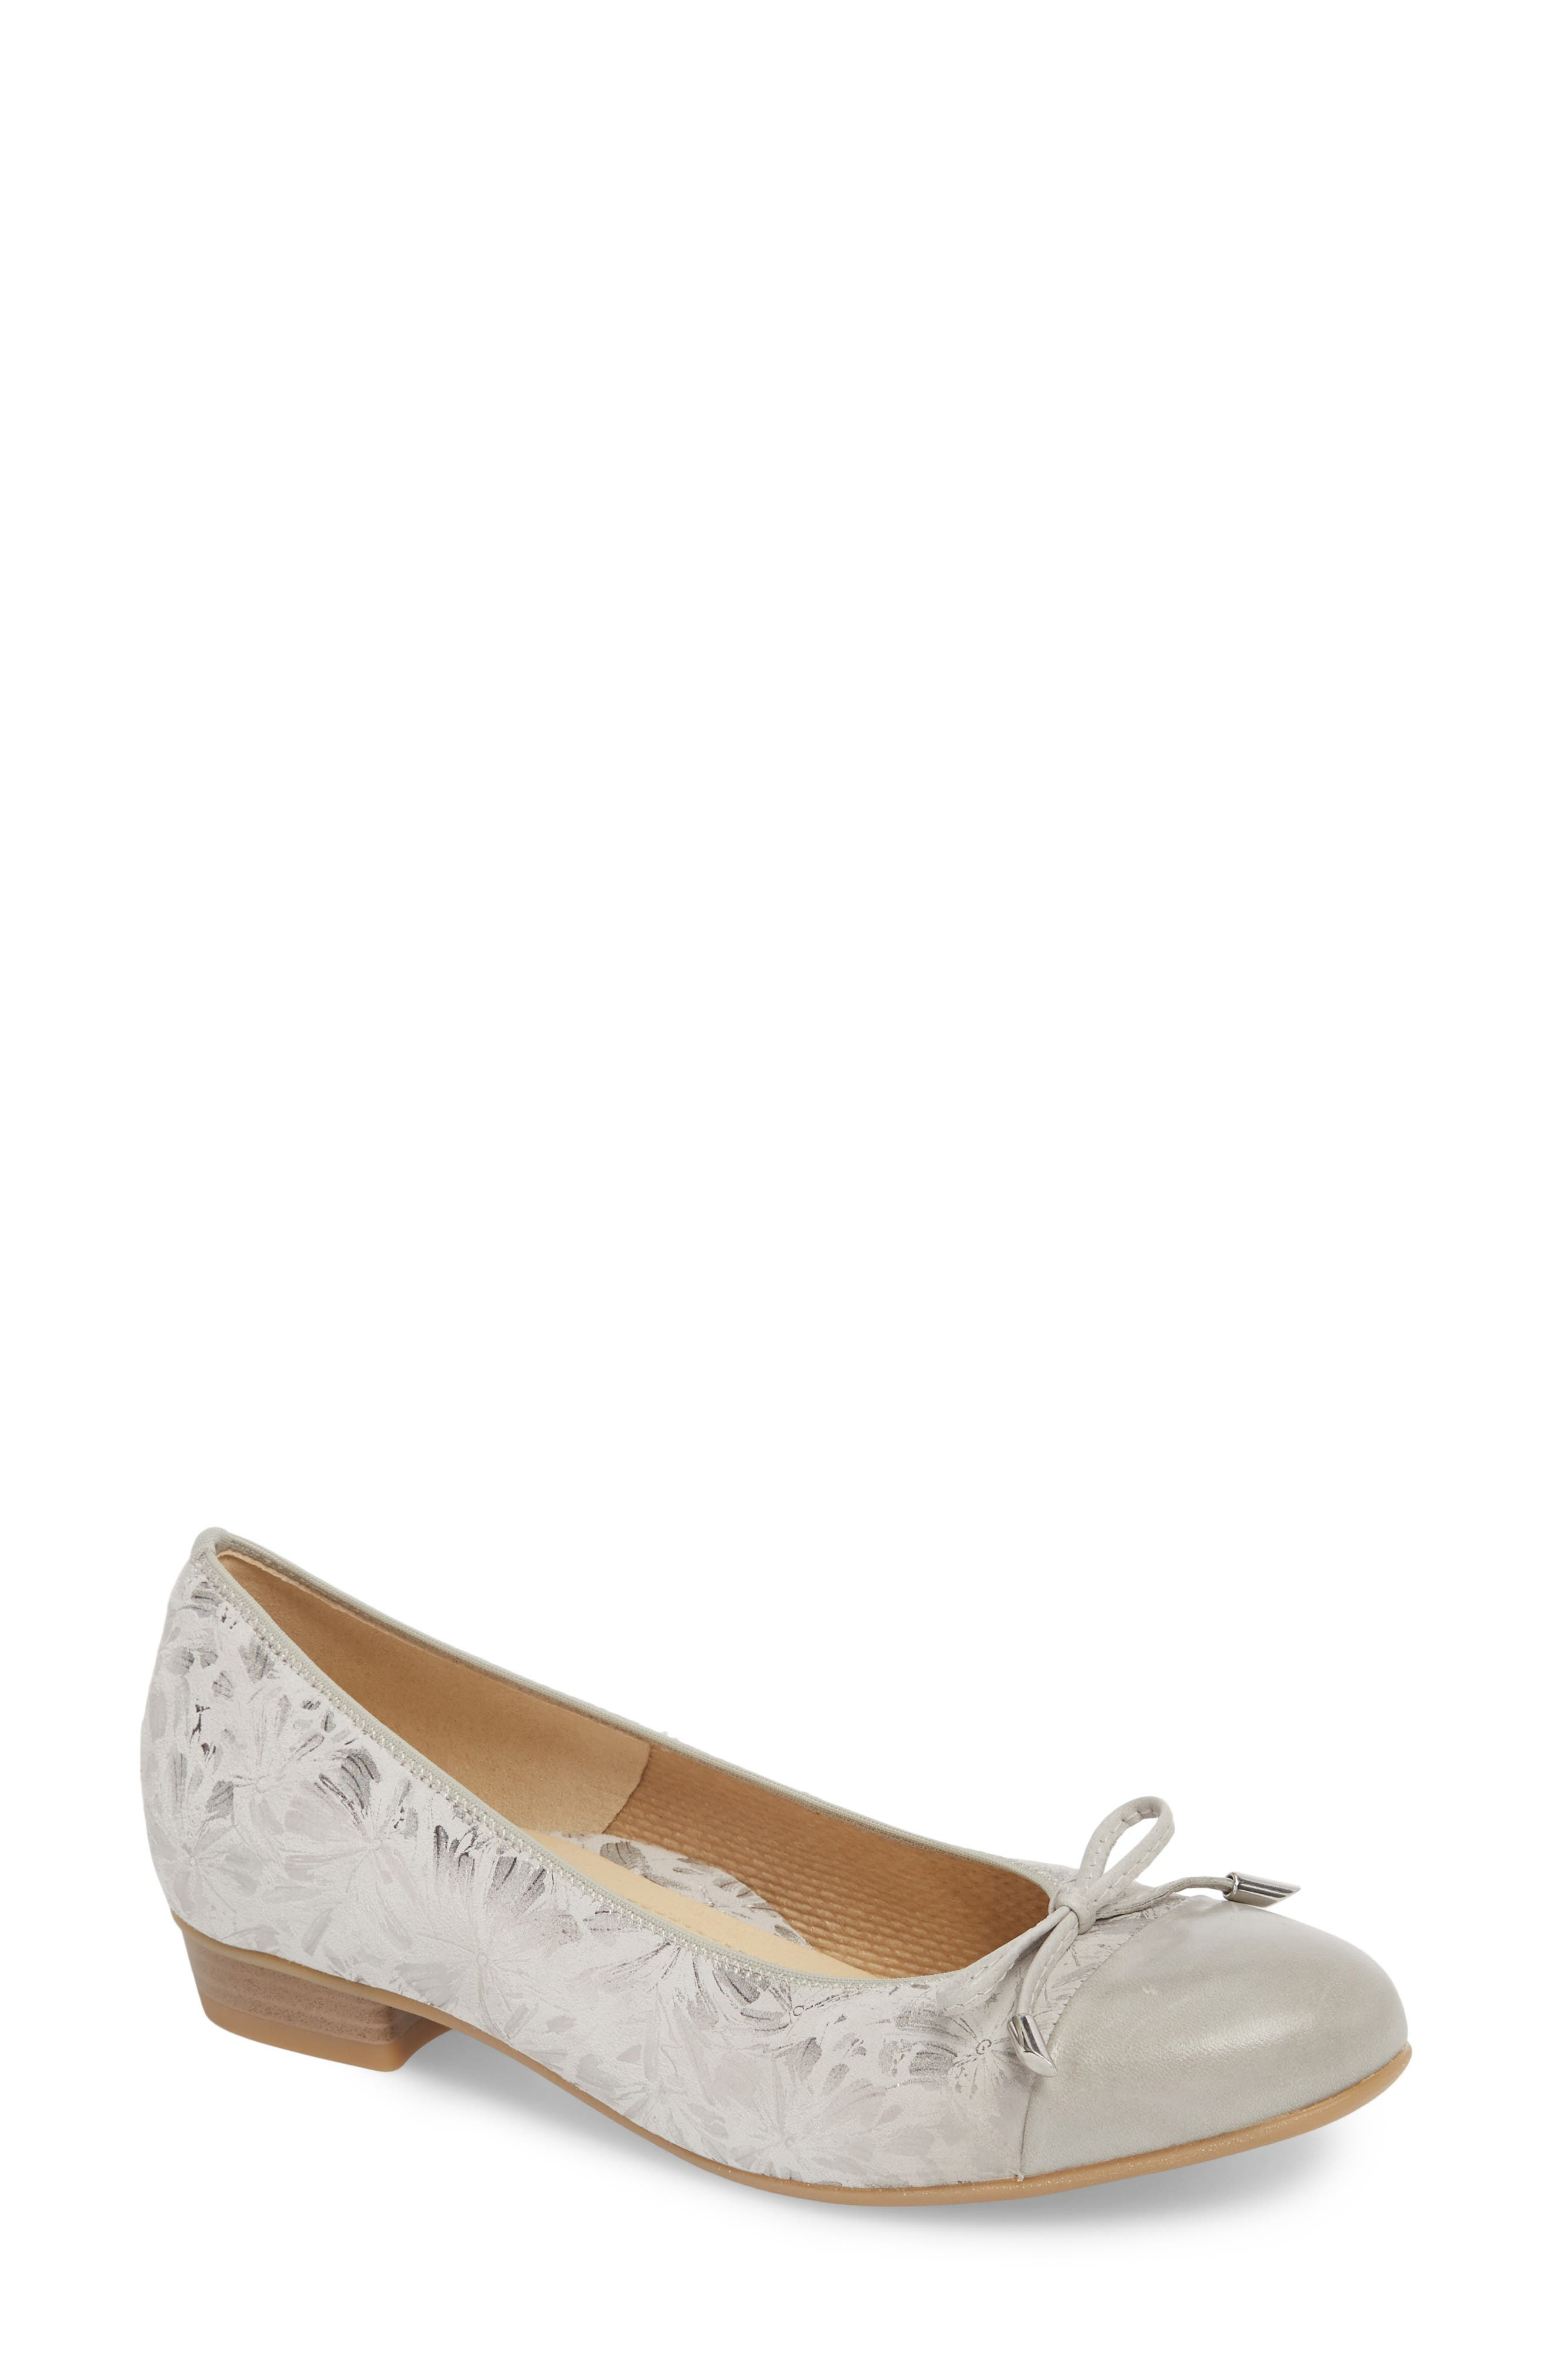 'Betty' Cap Toe Flat,                         Main,                         color, Silver Leather